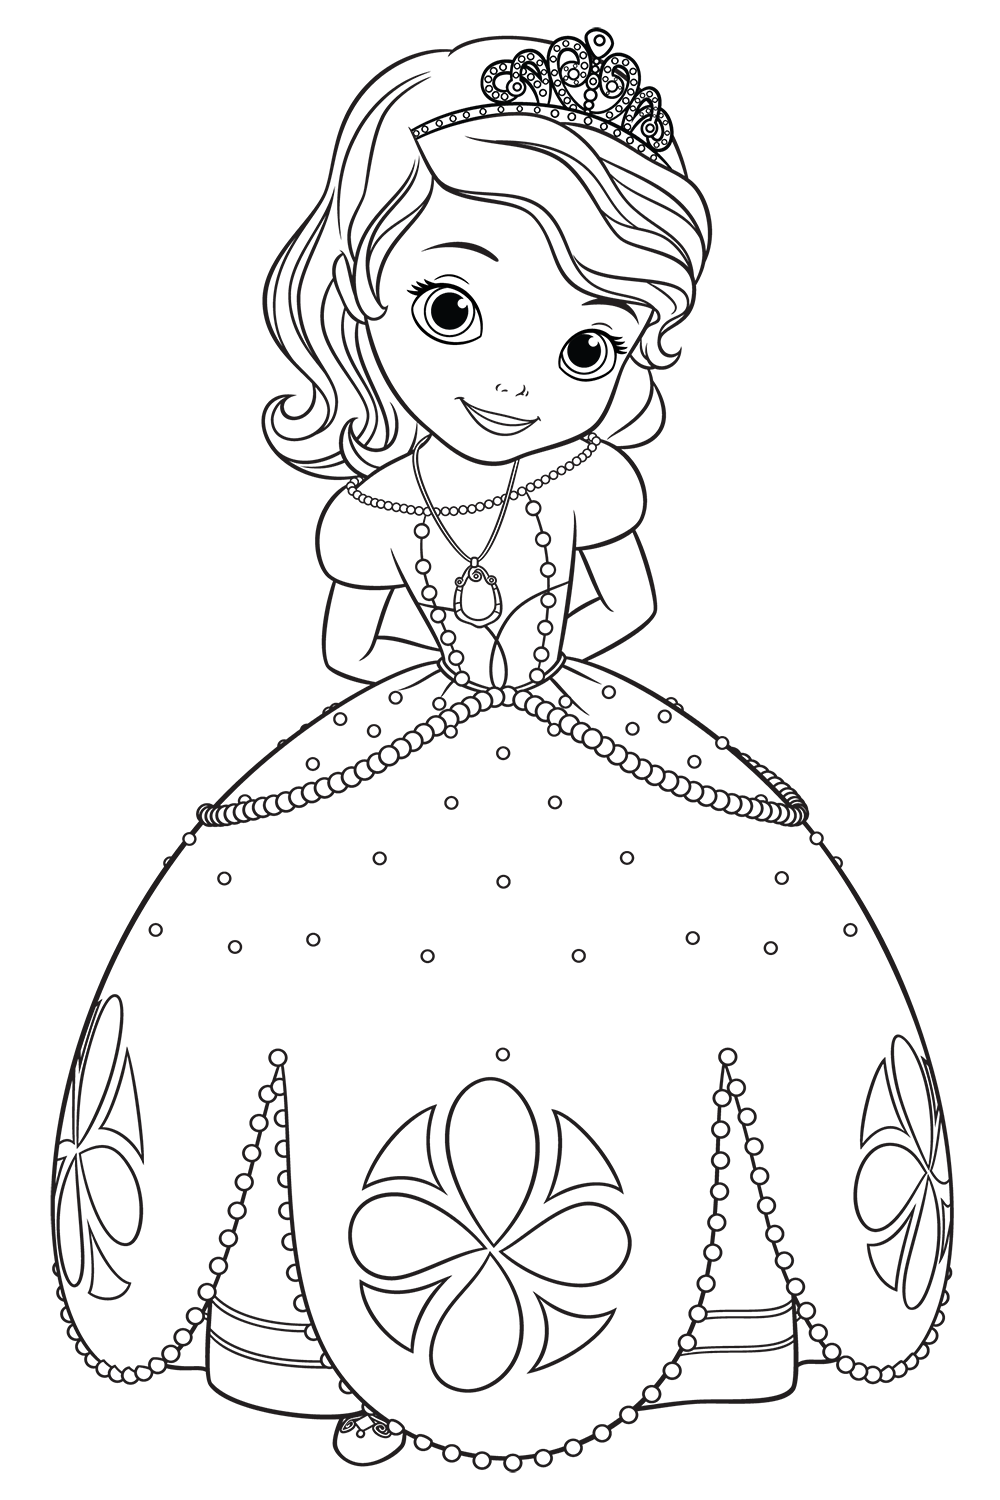 Queen clipart coloring book. Pin by laura finch